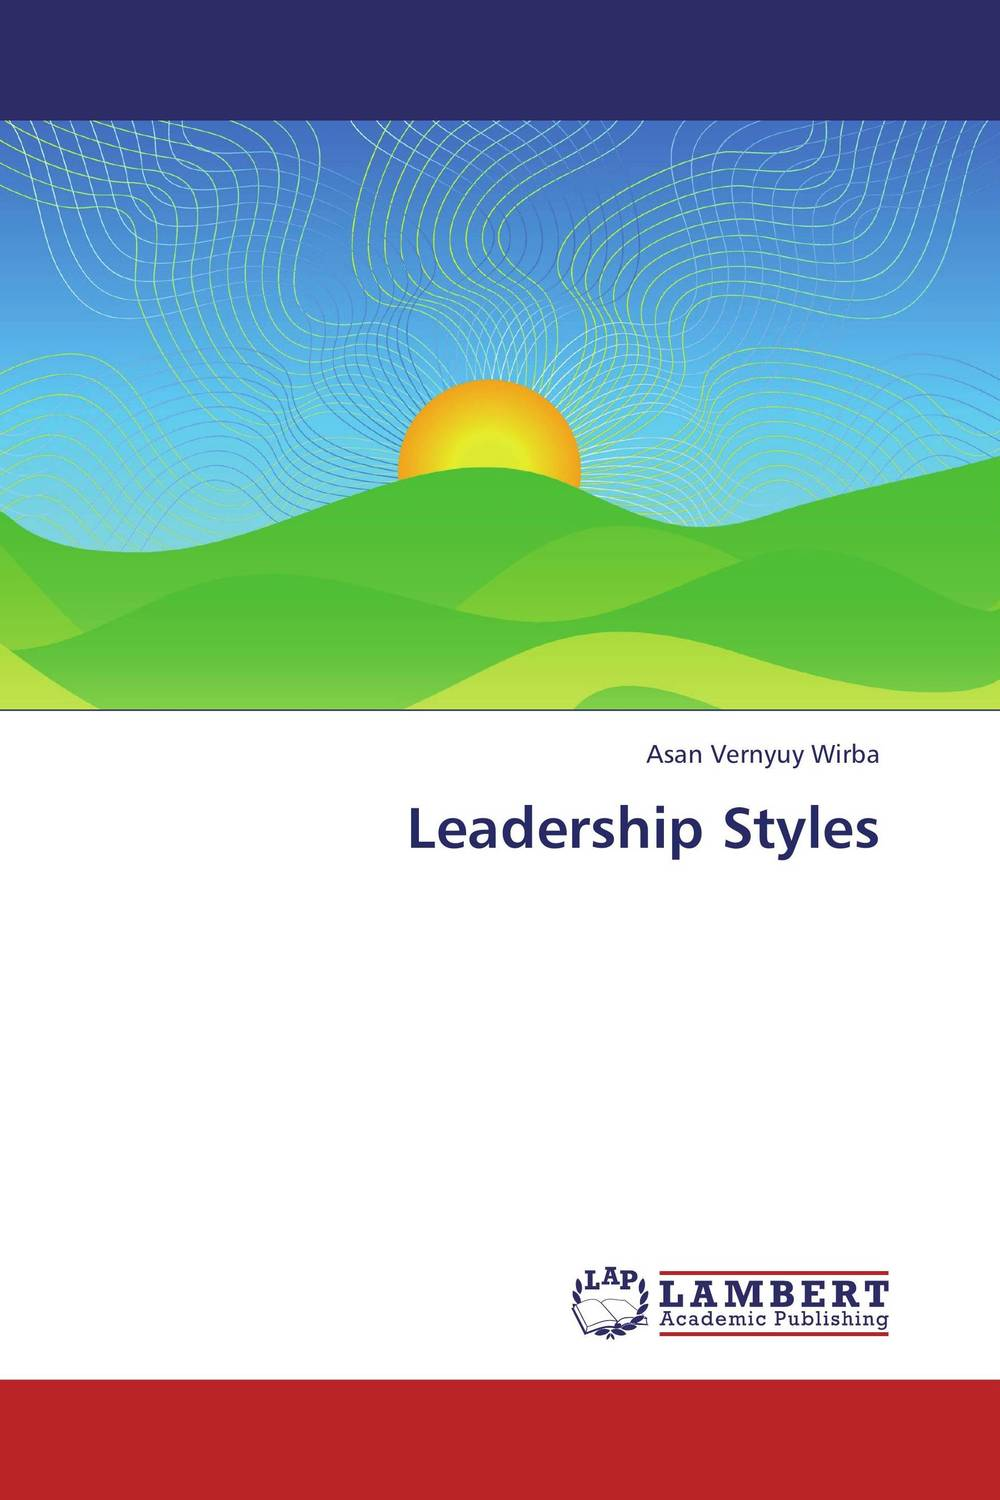 Leadership Styles from servitude to greatness